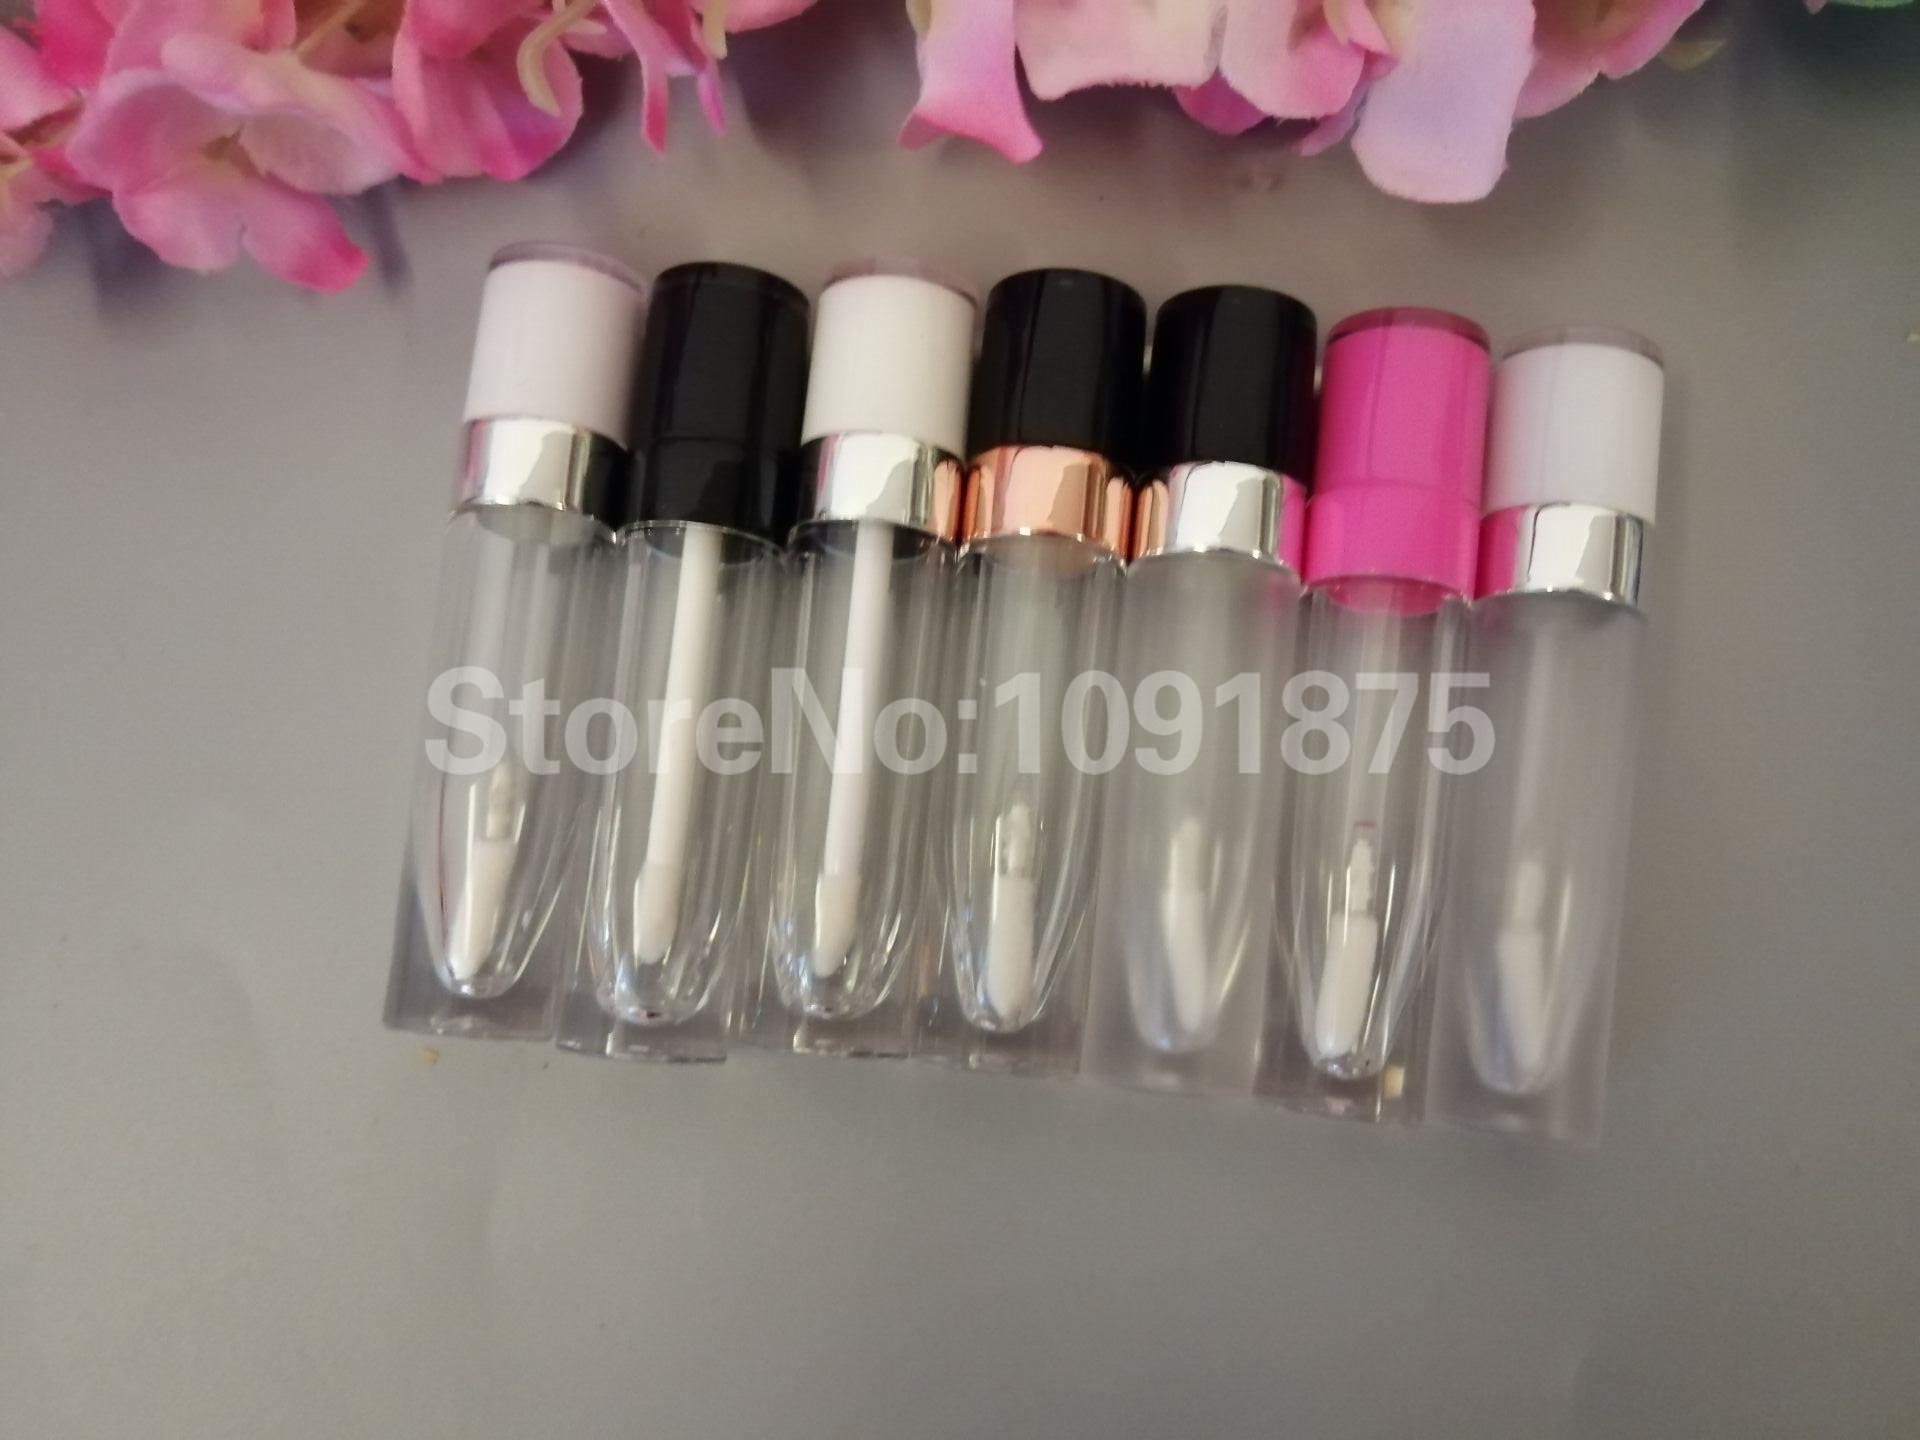 50pcs / lot 5ml Esvaziar Lip Gloss tubos redondos Limpar Lipgloss Tubo Lid Lip Gloss recipientes cosméticos Lipgloss Bottle